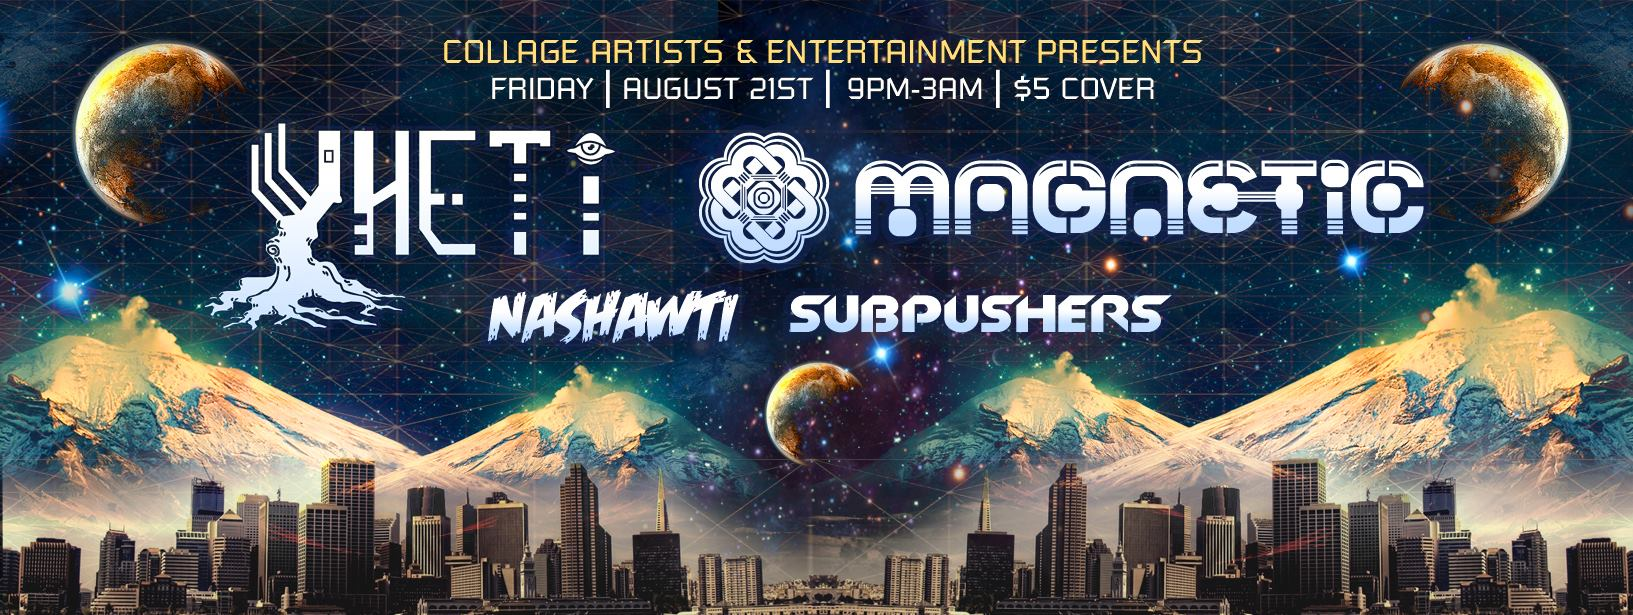 Yheti, Magnetic, Nashawti, & Subpushers - Friday, August 21st